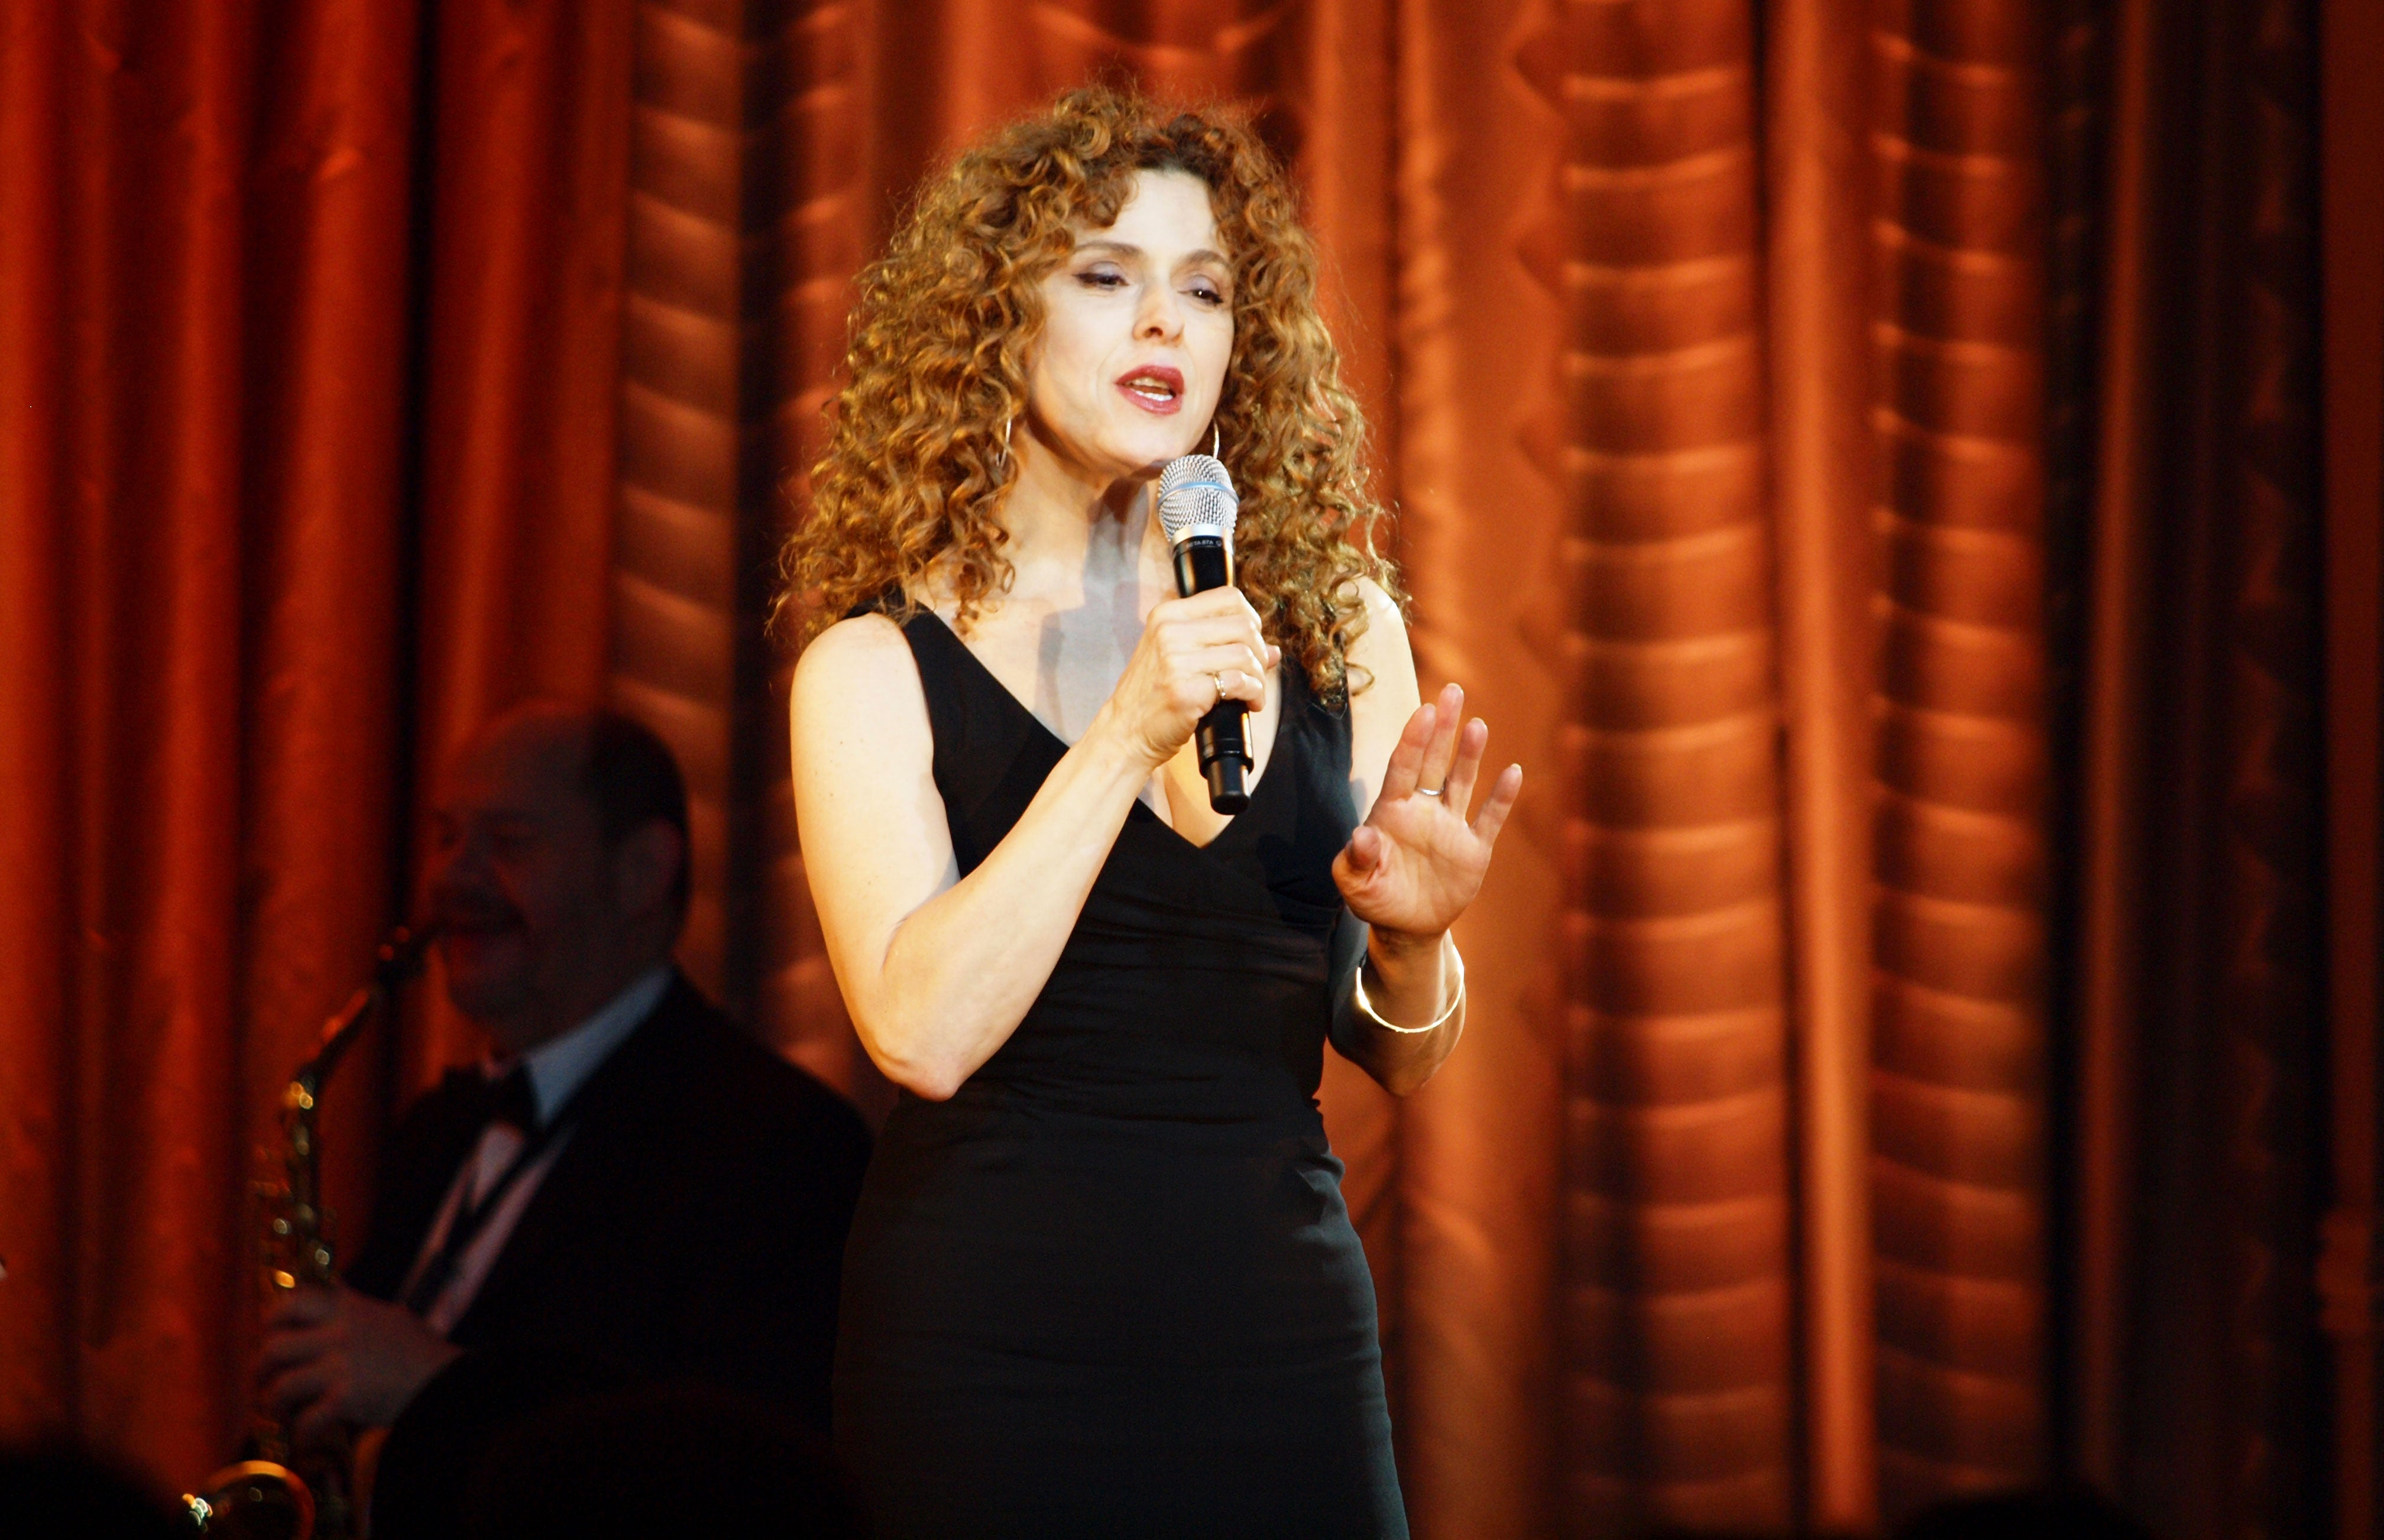 Bernadette Peter holding a mic wearing a black dress on a stage